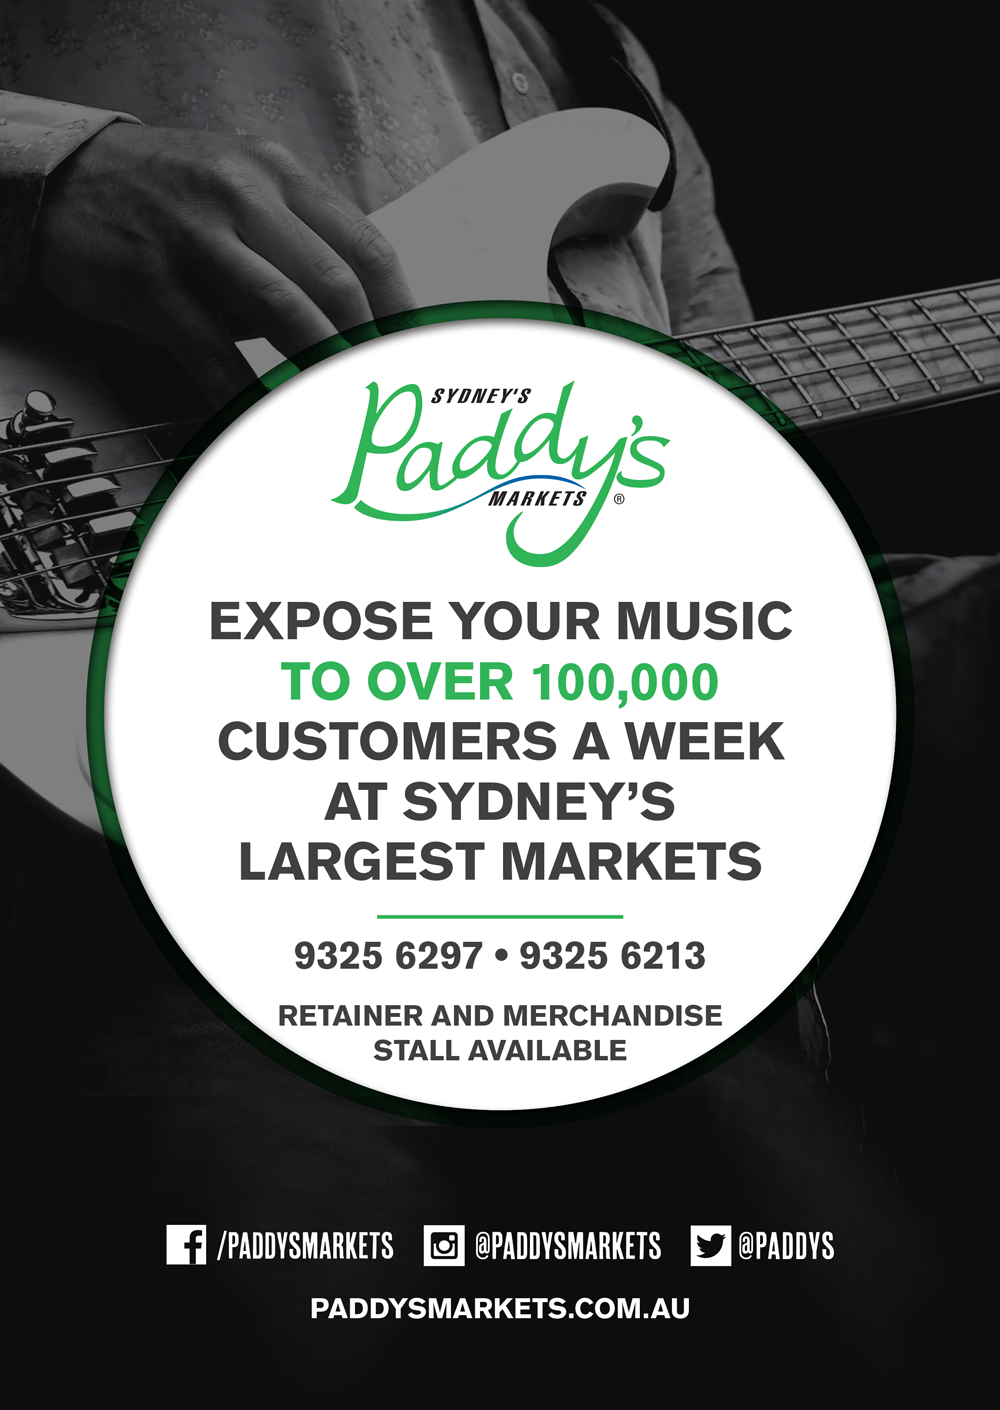 Expose your music to over 100,000 Customers a week